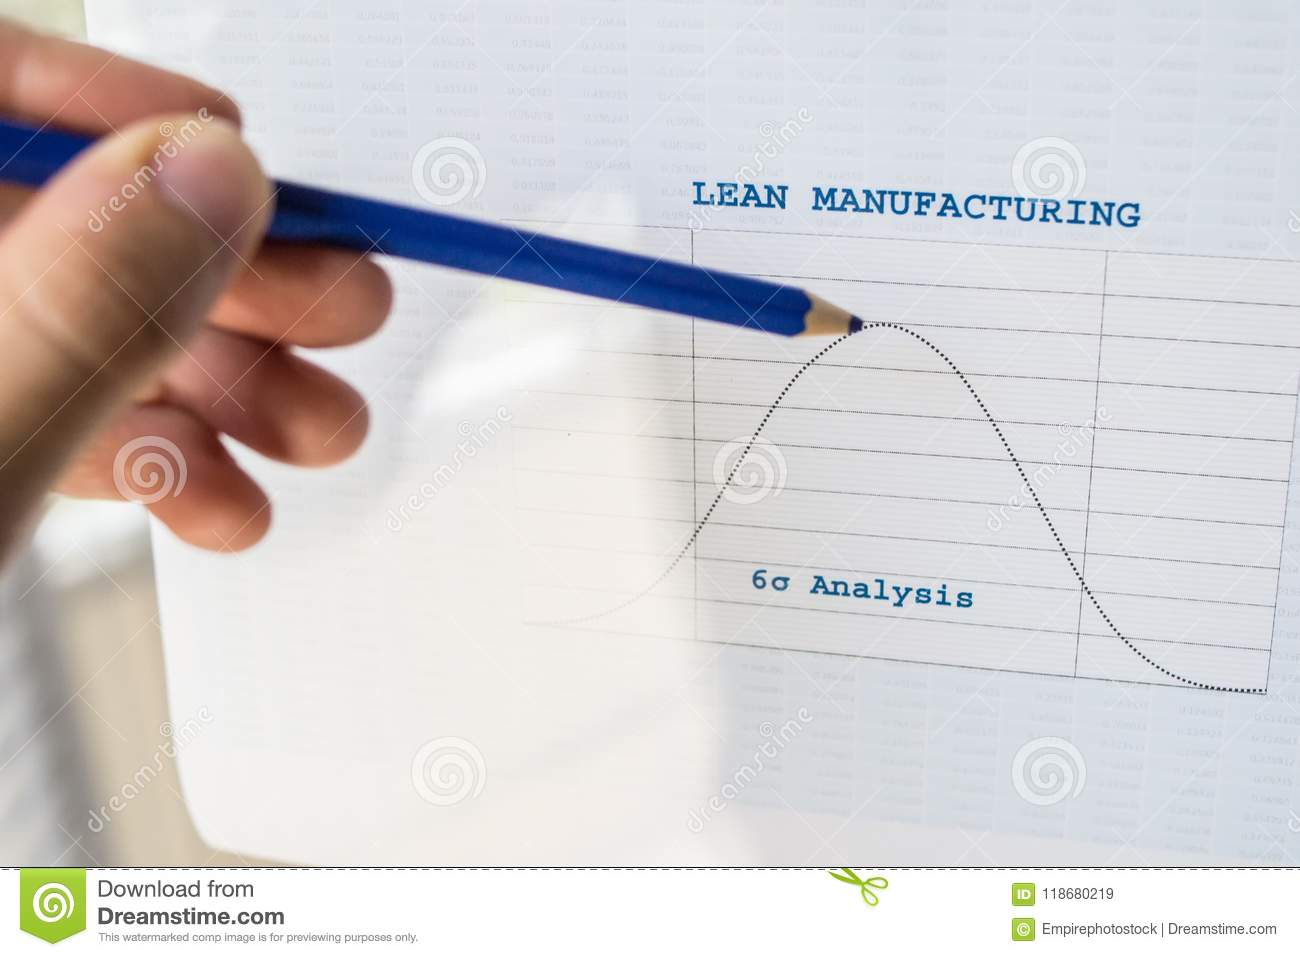 Lean Manufacturing Six Sigma Chart Stock Image - Image of ...